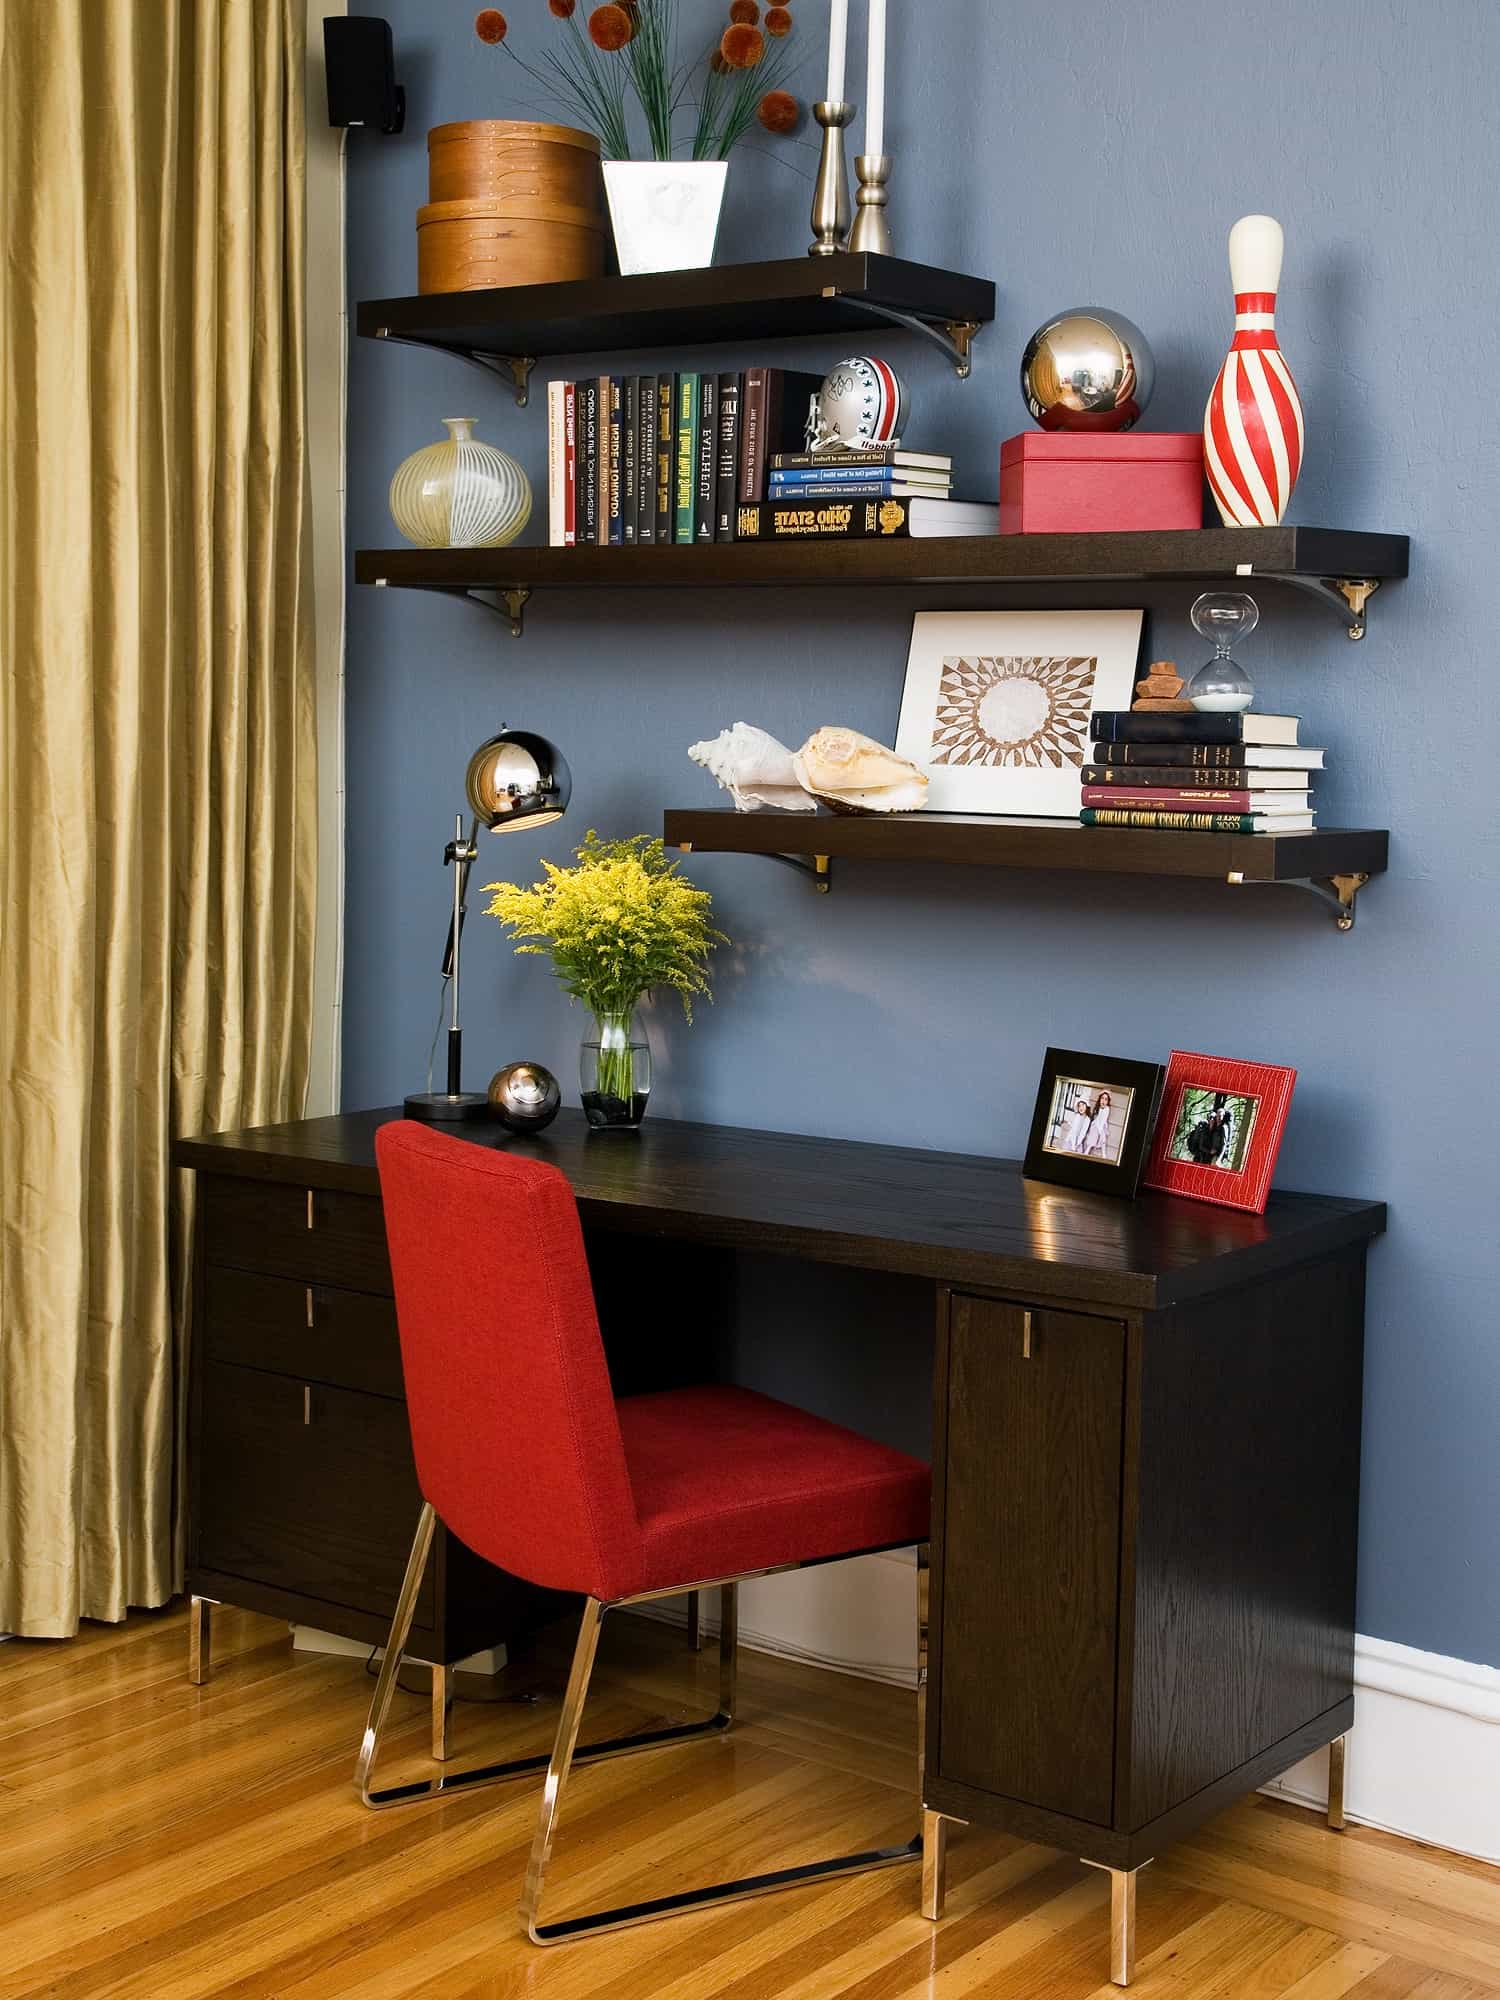 Contemporary Home Office With Floating Shelves And Red Parsons Chair (Image 5 of 16)